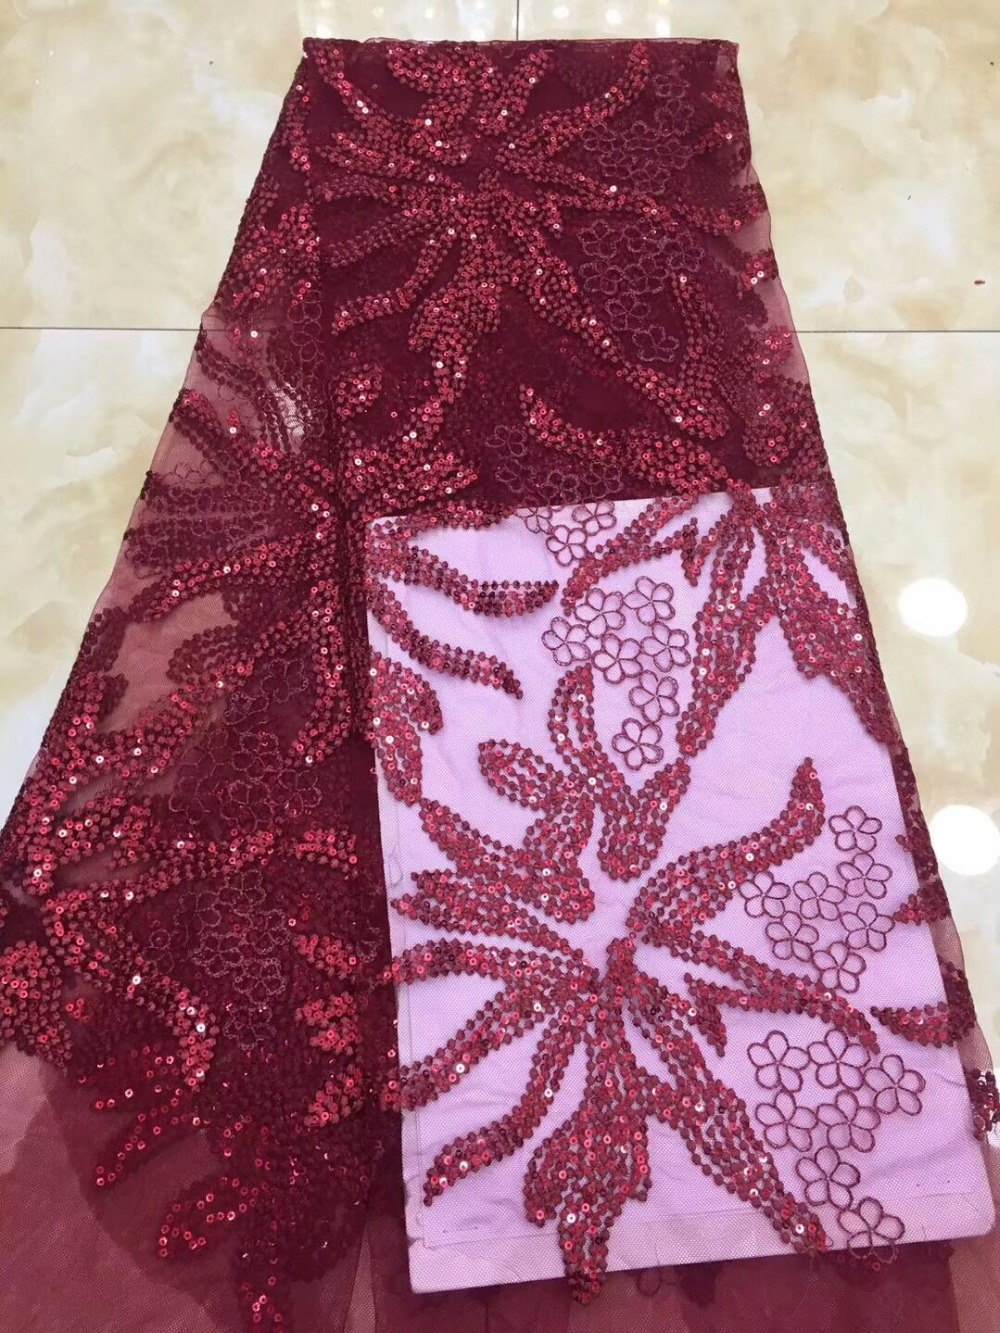 Latest sequins  Lace Fabrics Embroidered African French Tulle Lace Fabric 2018 Cord Nigerian French Lace Fabric     DPJ221Latest sequins  Lace Fabrics Embroidered African French Tulle Lace Fabric 2018 Cord Nigerian French Lace Fabric     DPJ221